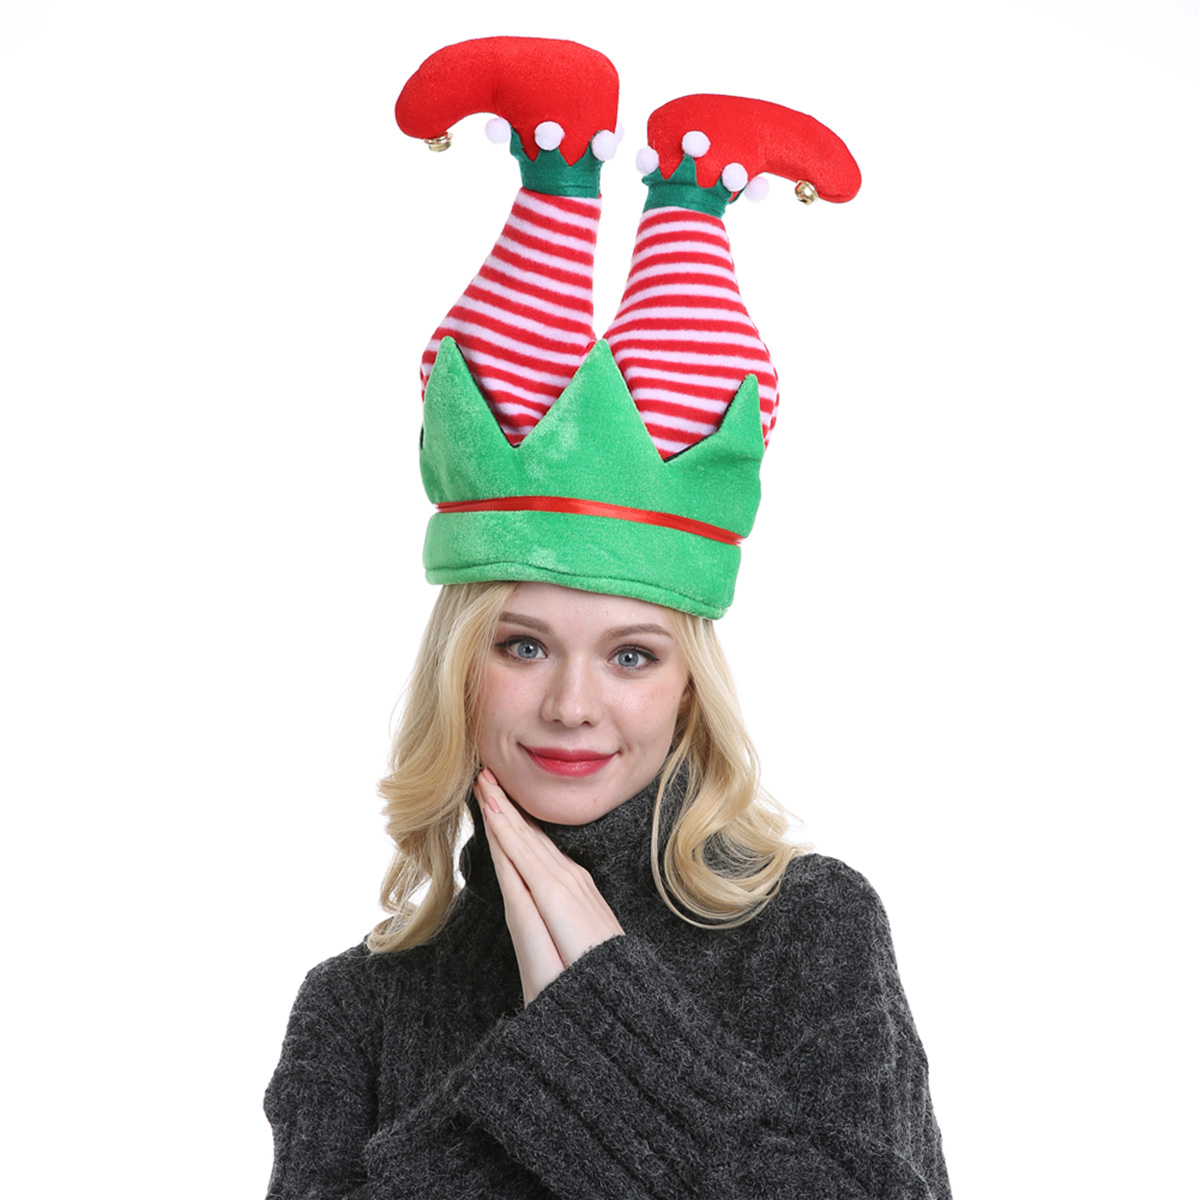 12 Christmas Xmas Novelty Felt Party Santa Elf Hats Fancy Dress With 3D STICKERS